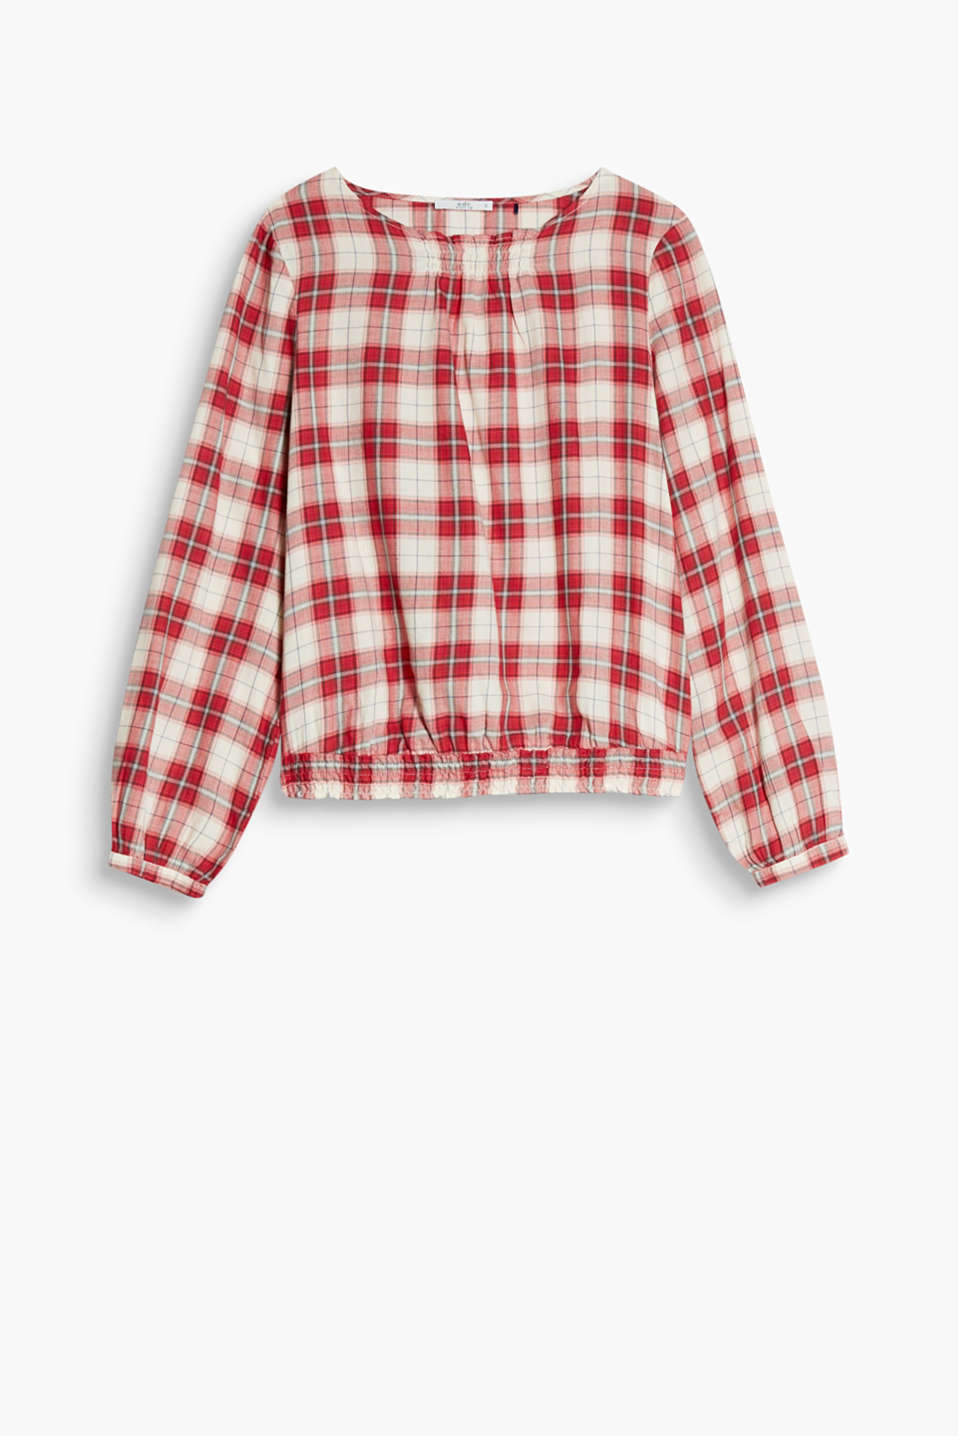 This fine blouse in cotton with elasticated, smoked hem borders features classic checks yet has a special twist.